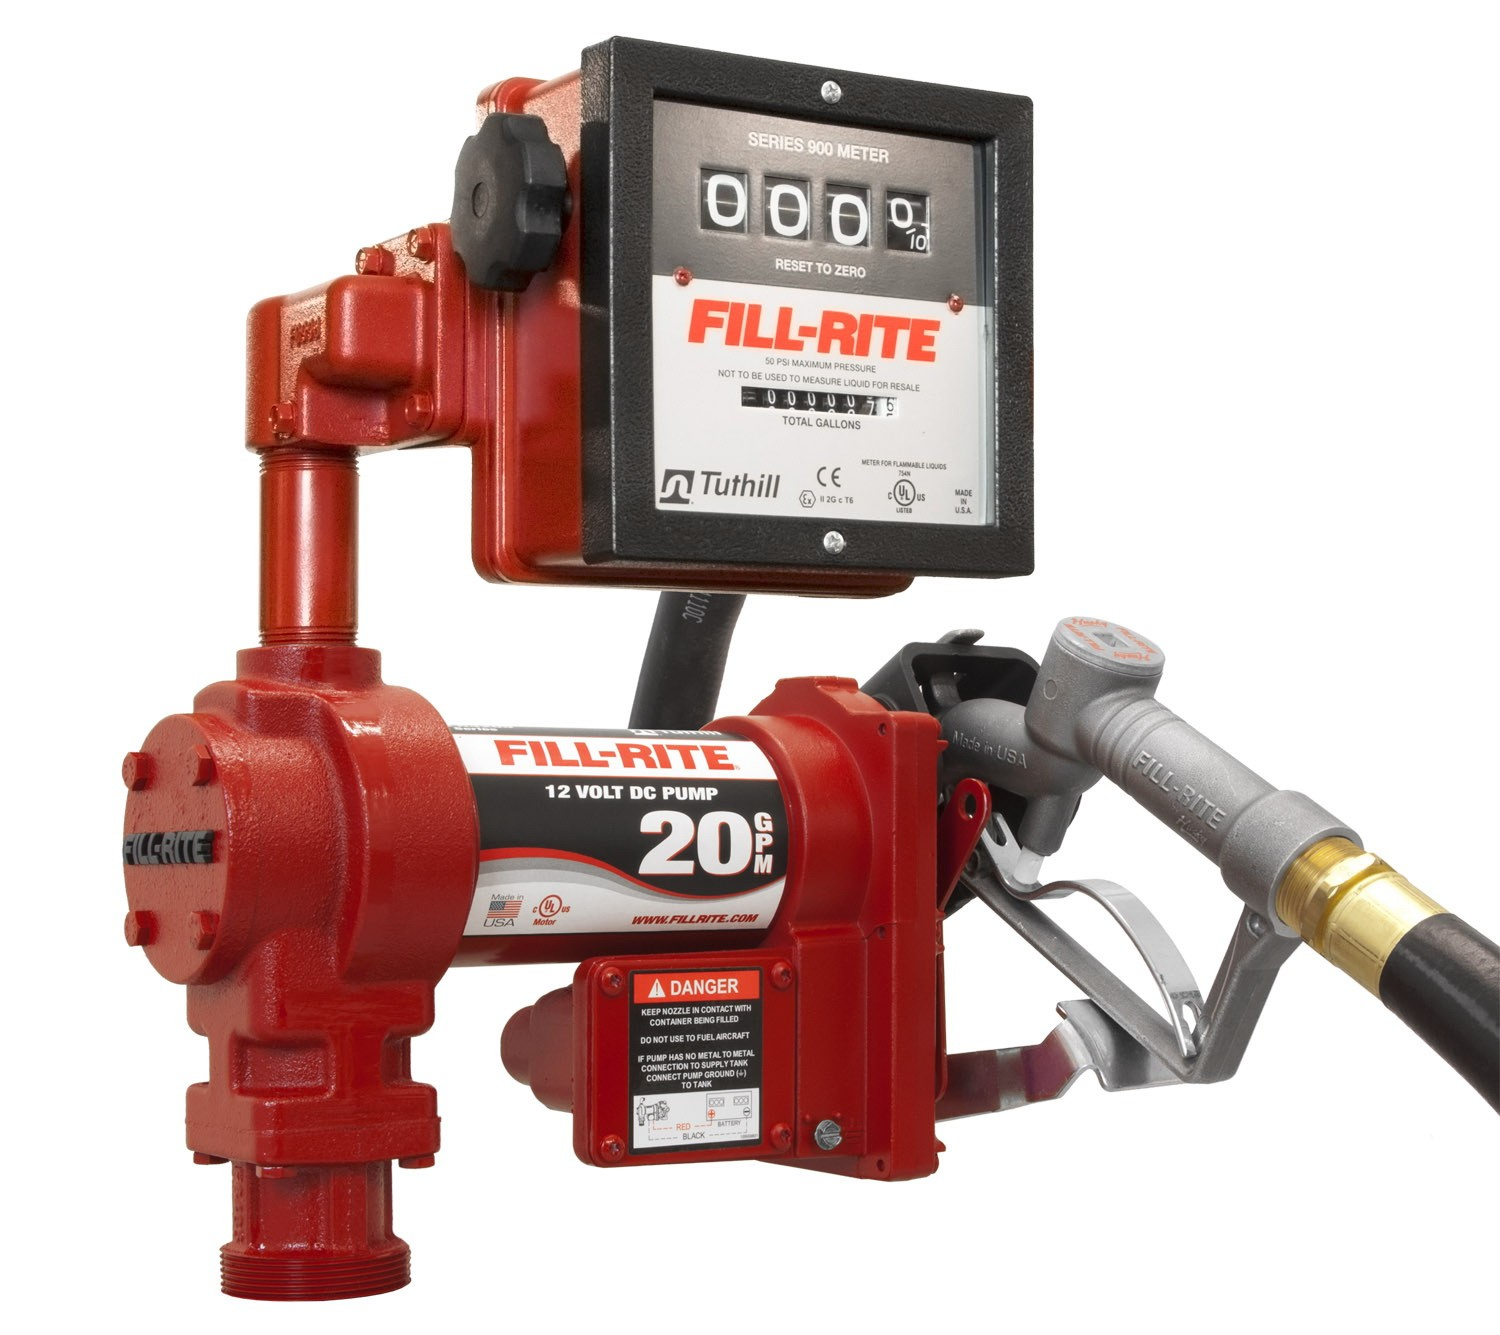 Fill-Rite FR4211GL Hi-Flow Transfer Pump w/ 901L Meter and Manual Nozzle (20 GPM)